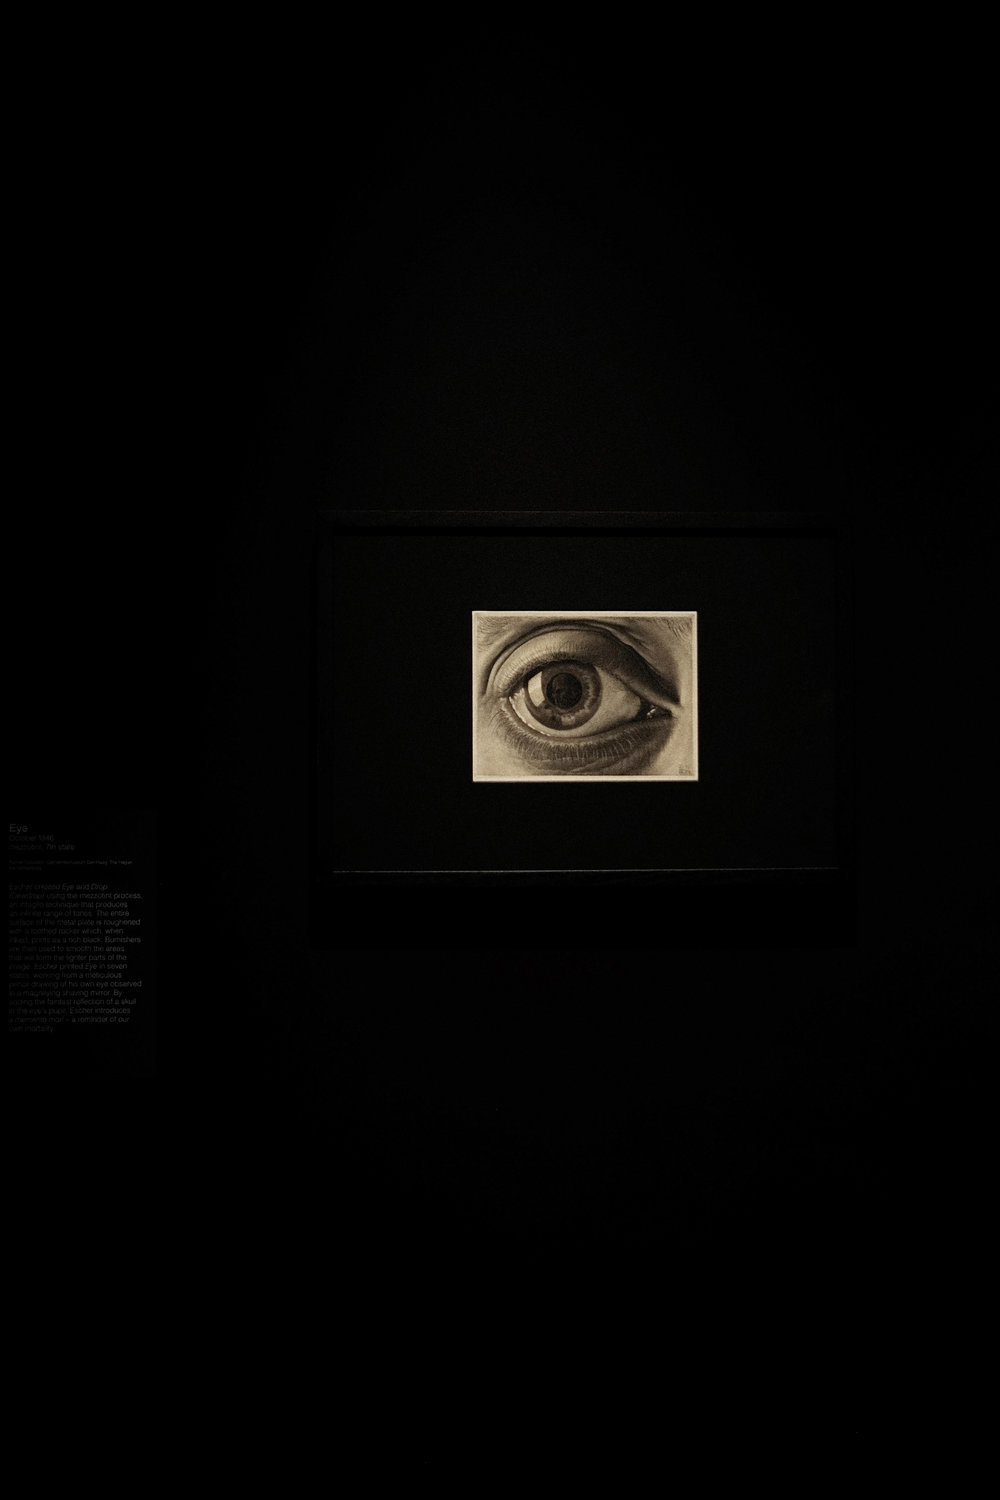 M.C Escher - National Gallery of Victoria